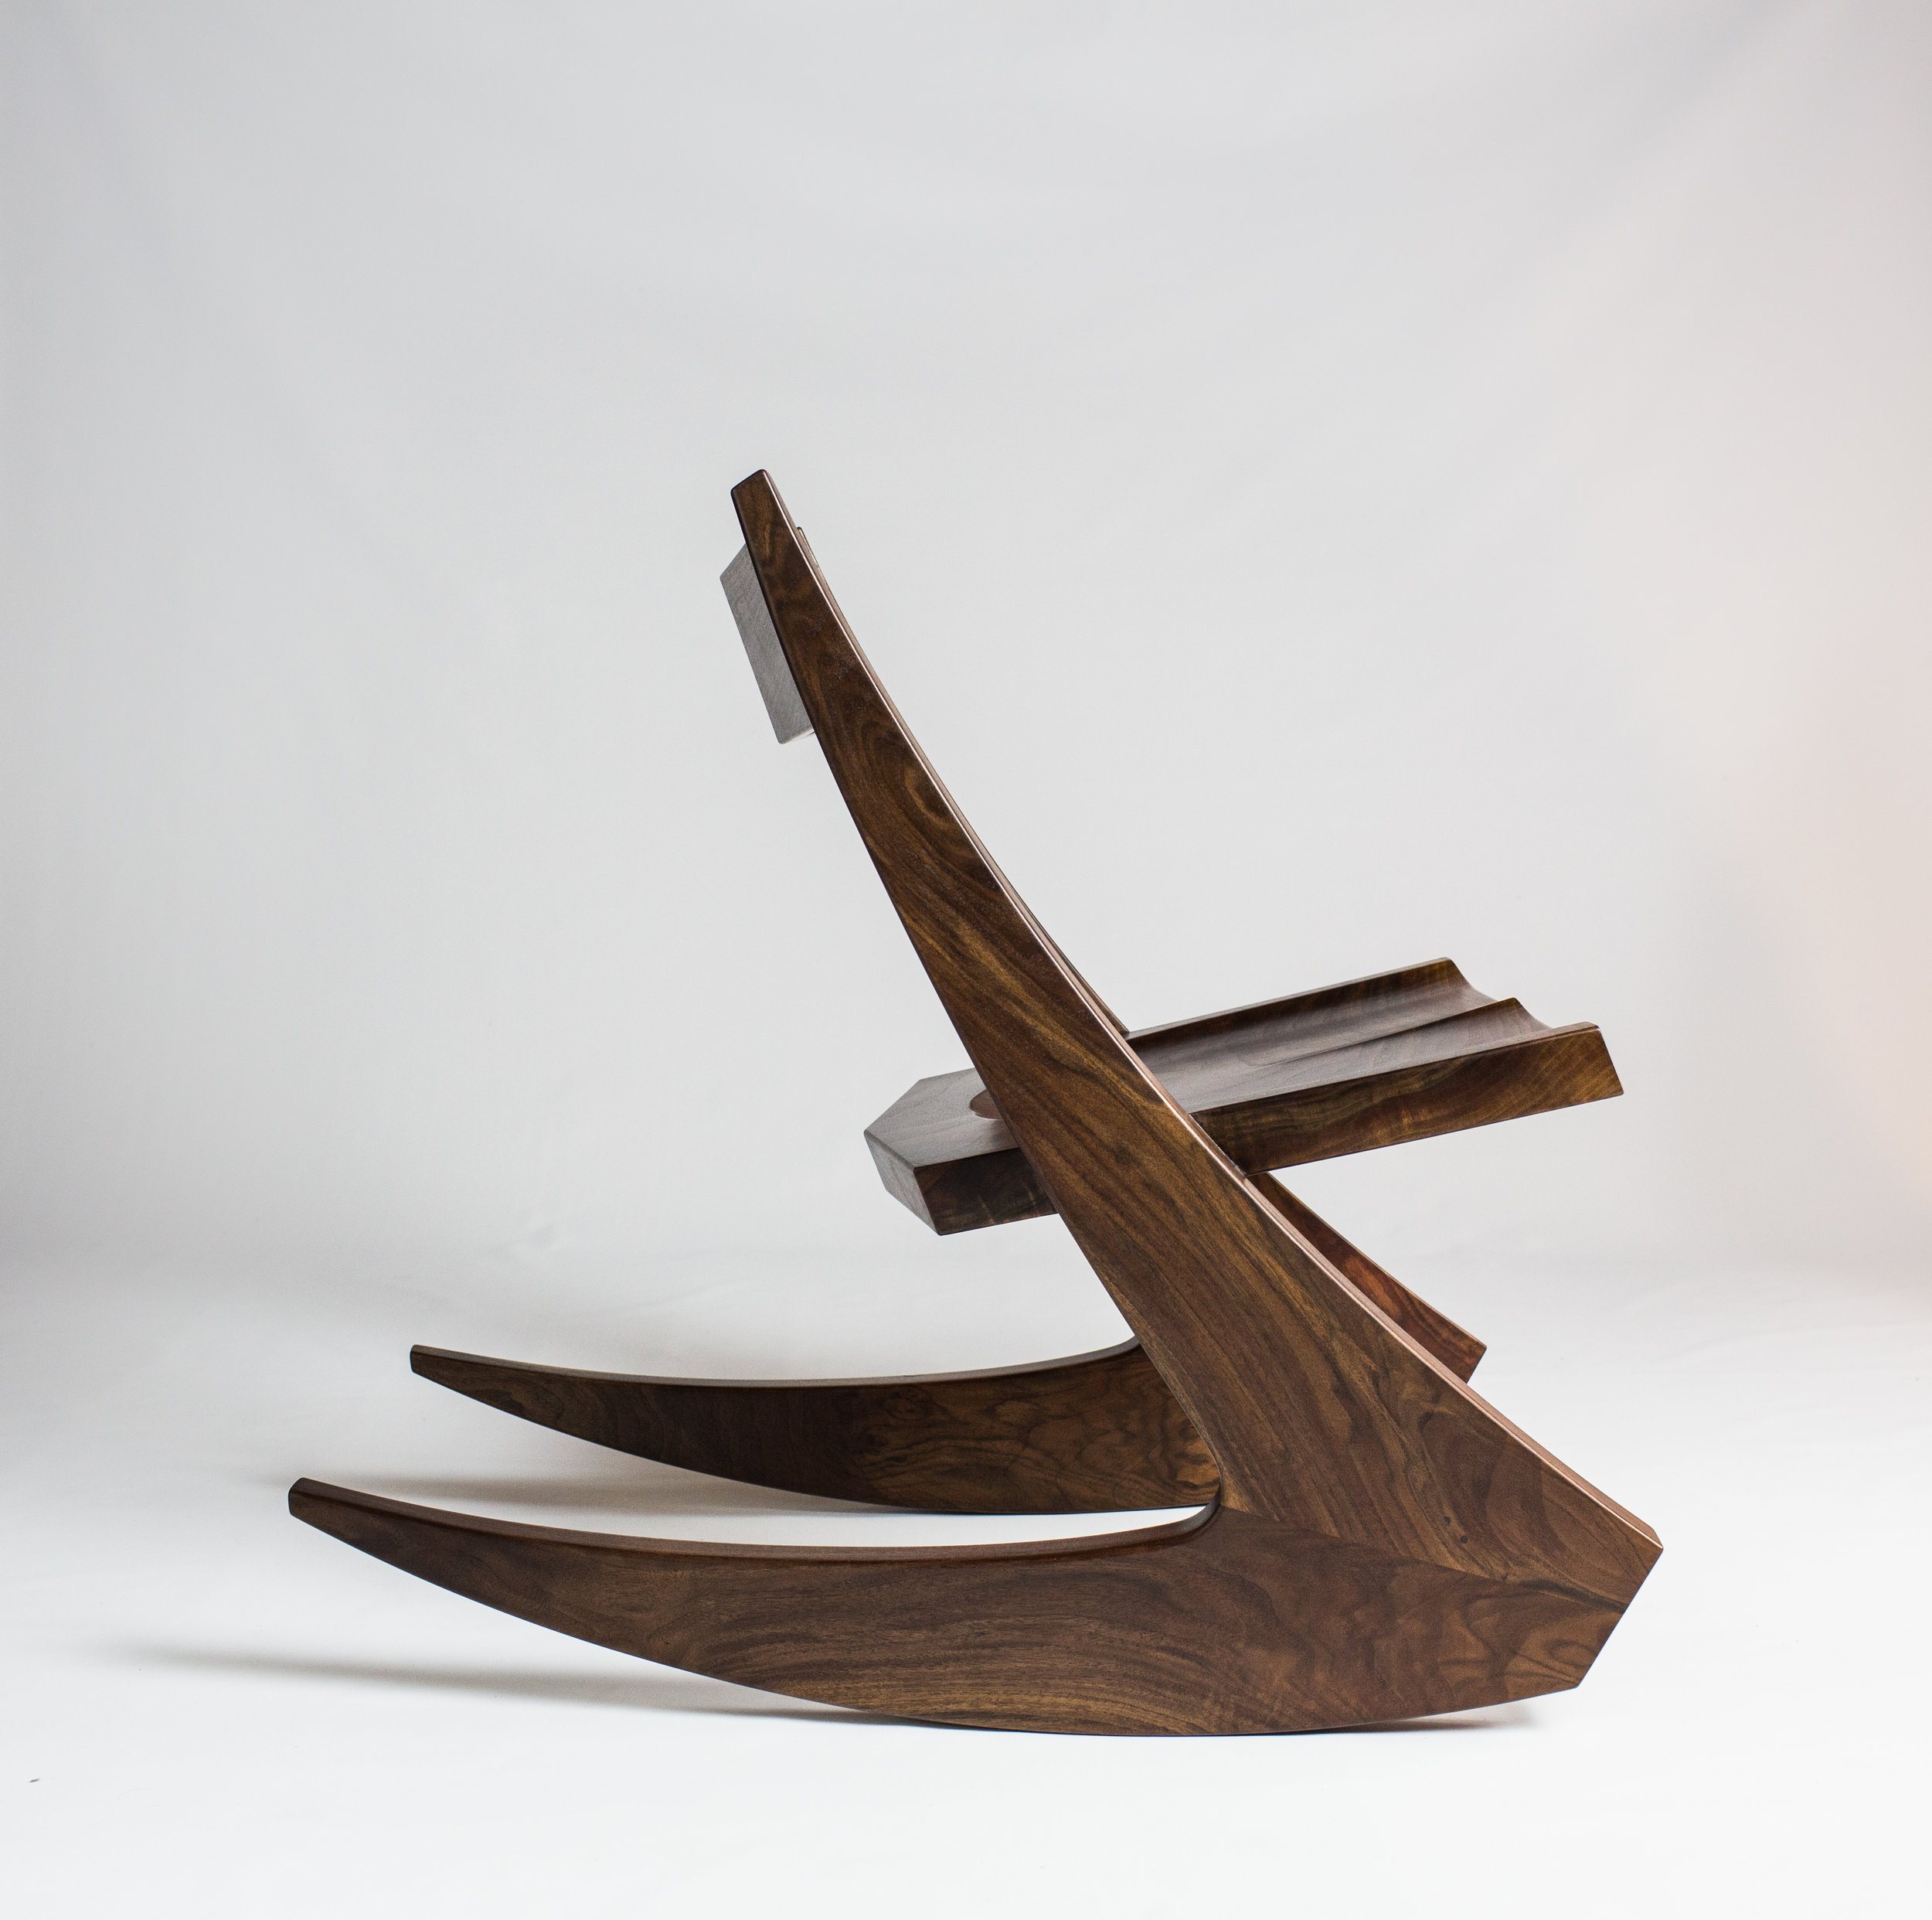 ben-riddering-walnut-hairpin-midcentury-modern-rocking-chair